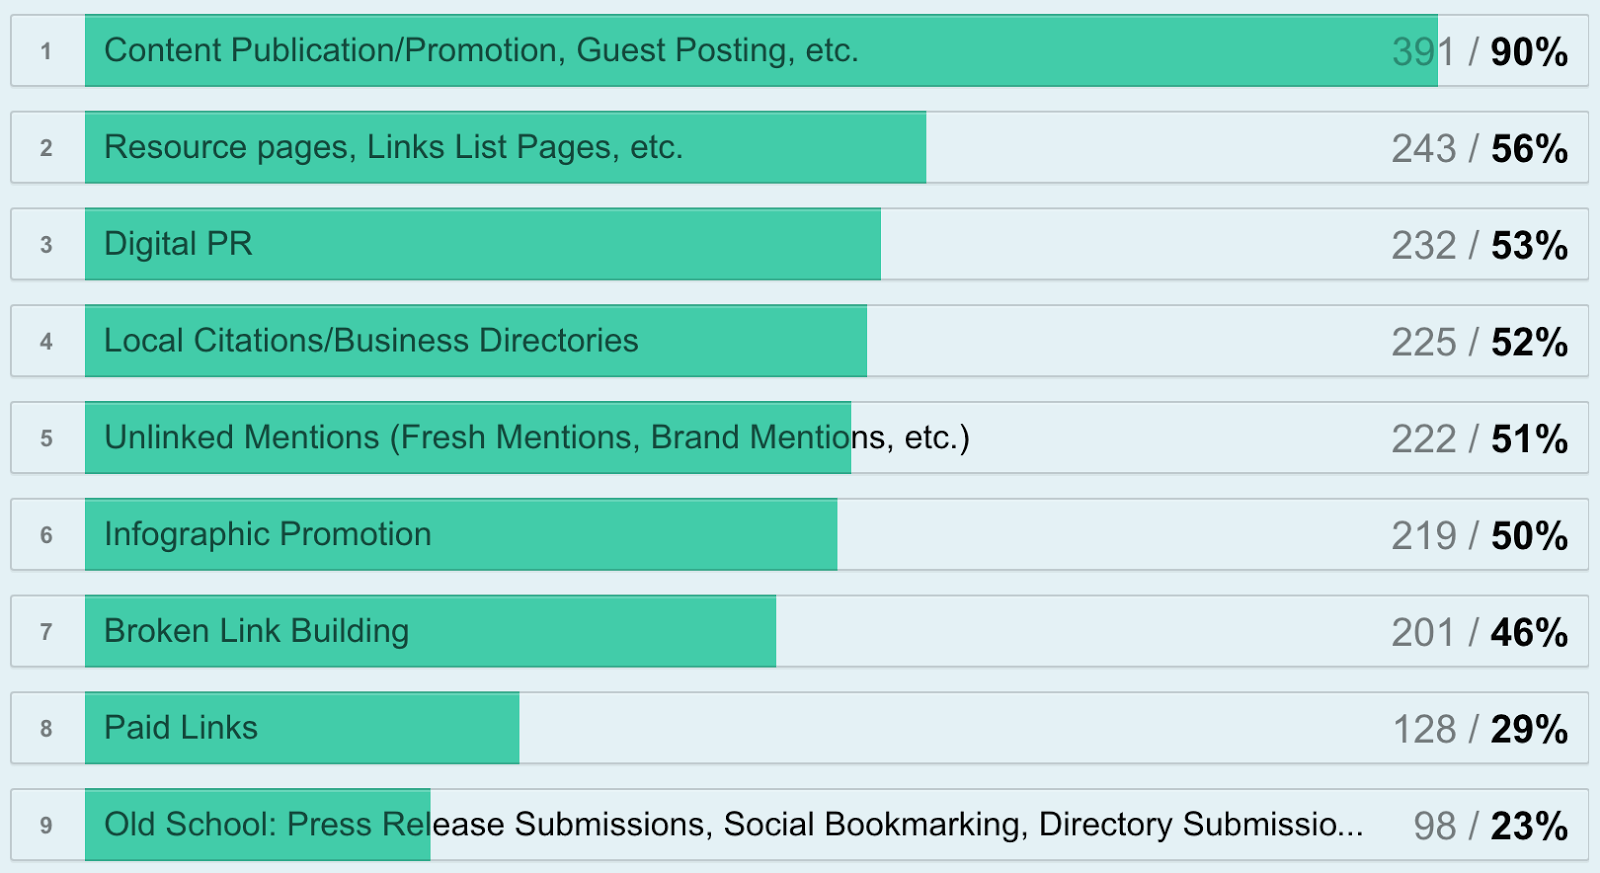 survey q10 link building tactics used.png